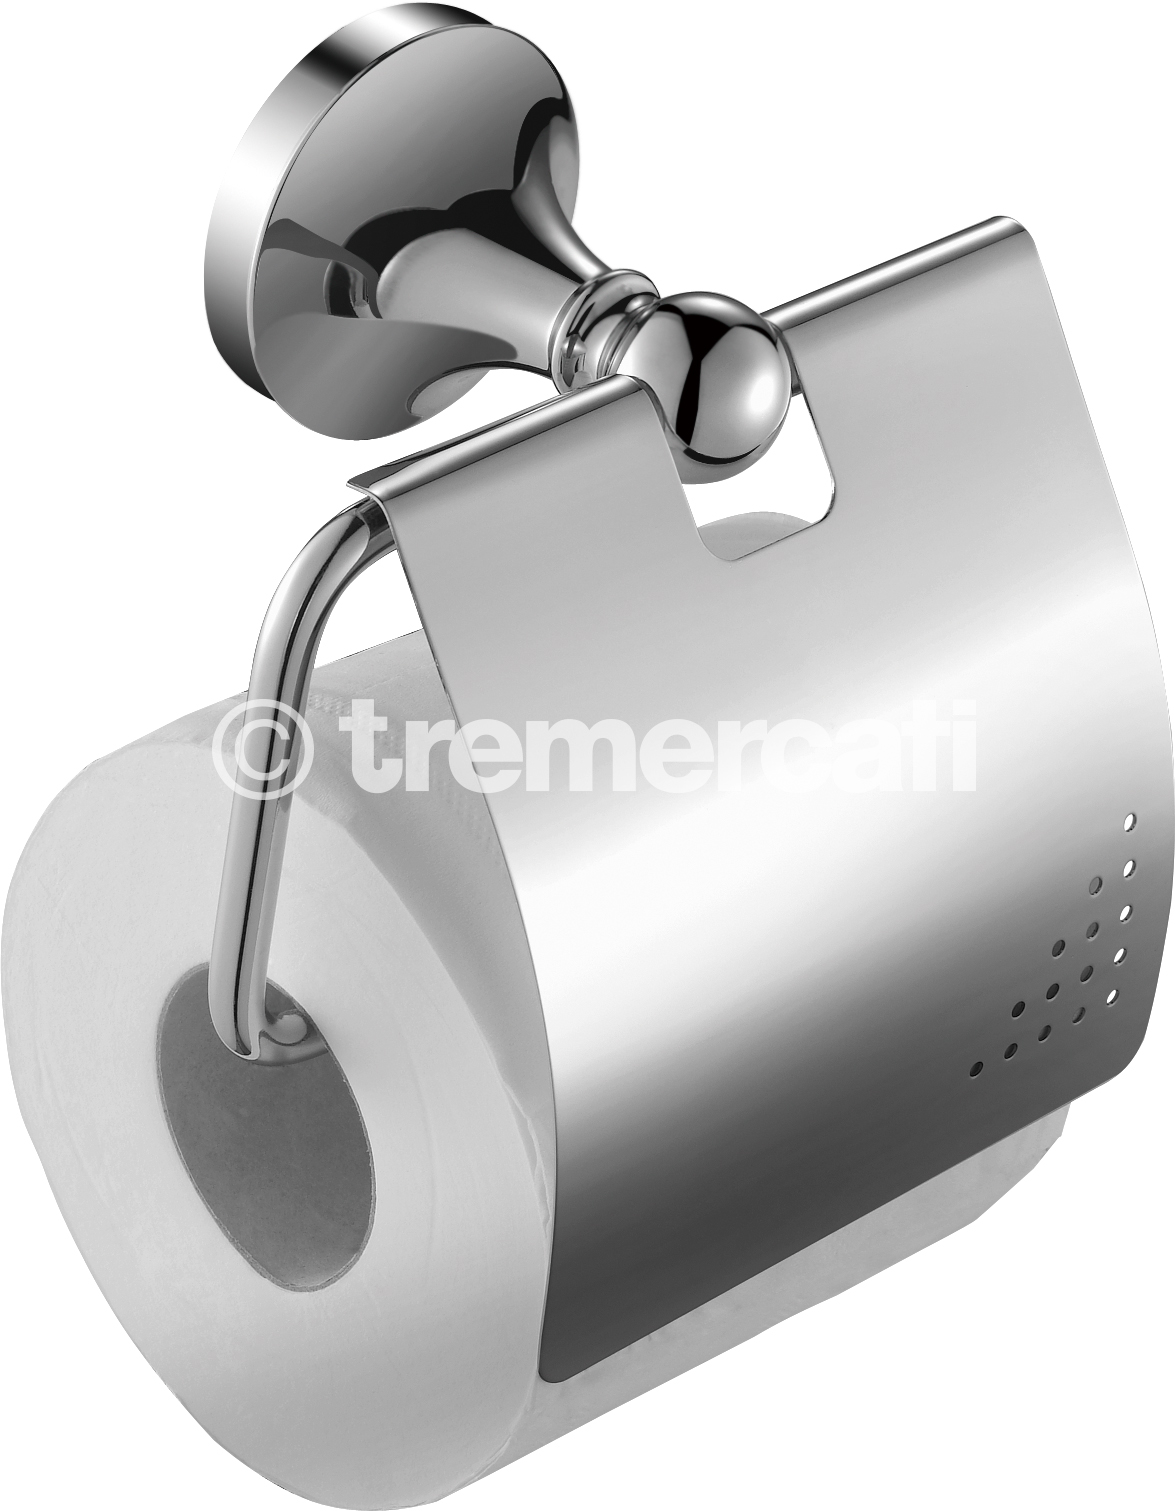 TRE MERCATI IMPERIAL COVERED TOILET ROLL HOLDER - CHROME PLATED